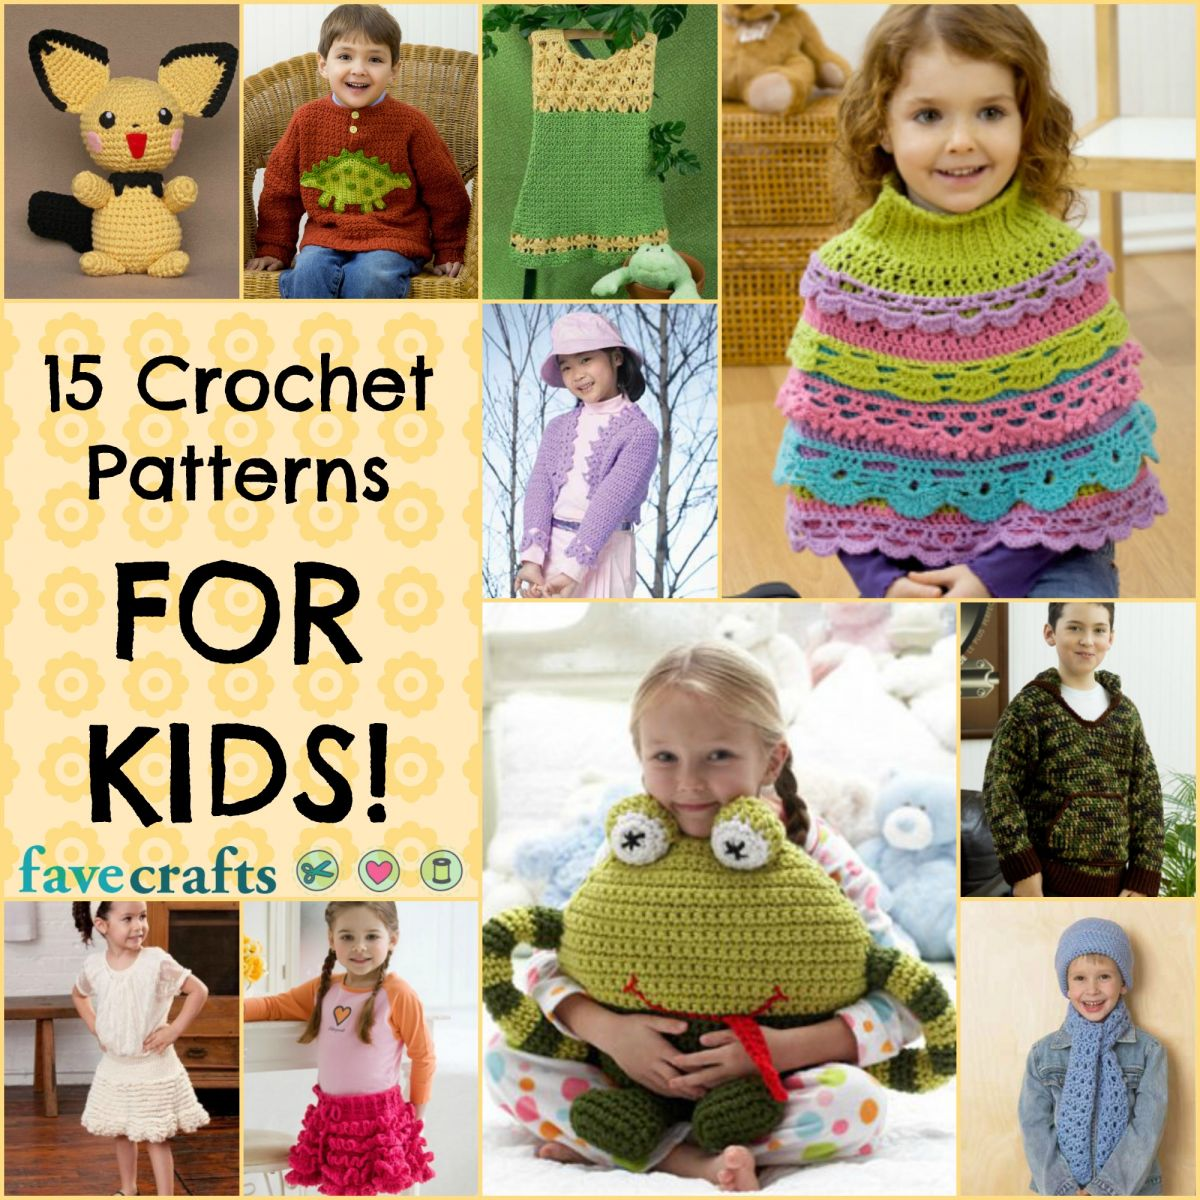 Crochet Patterns for Kids